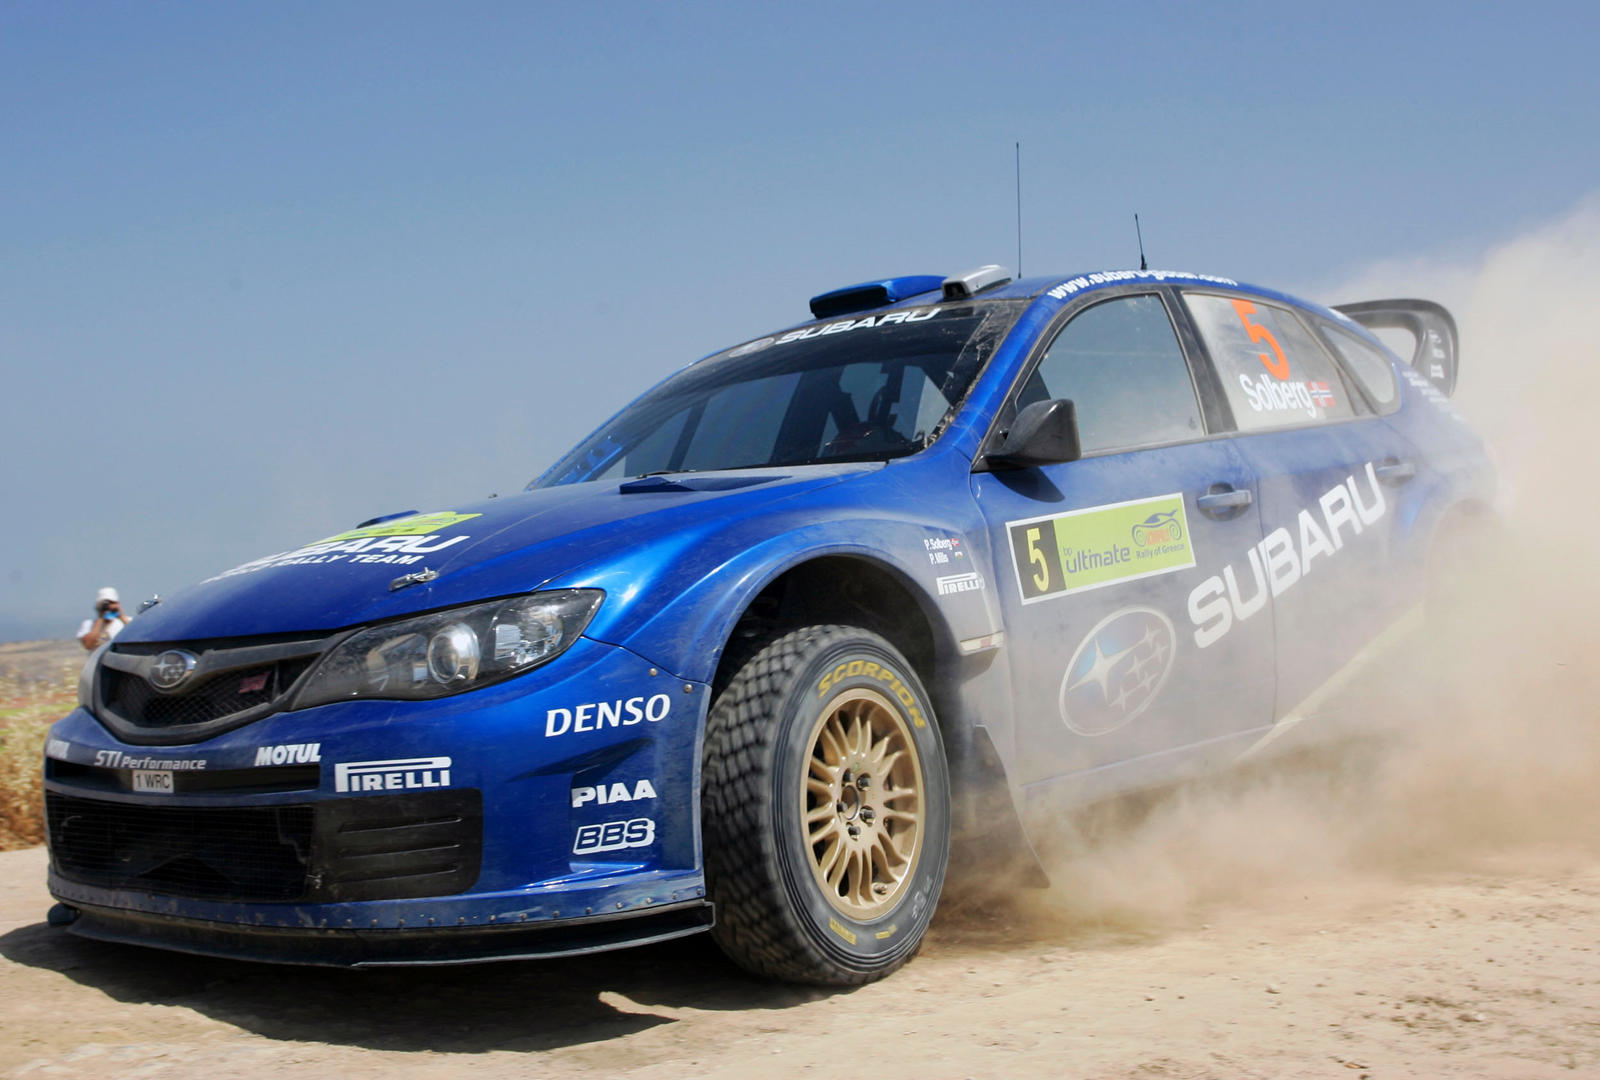 Subaru WRX STI Rally Racers Finally Getting The Attention They Deserve